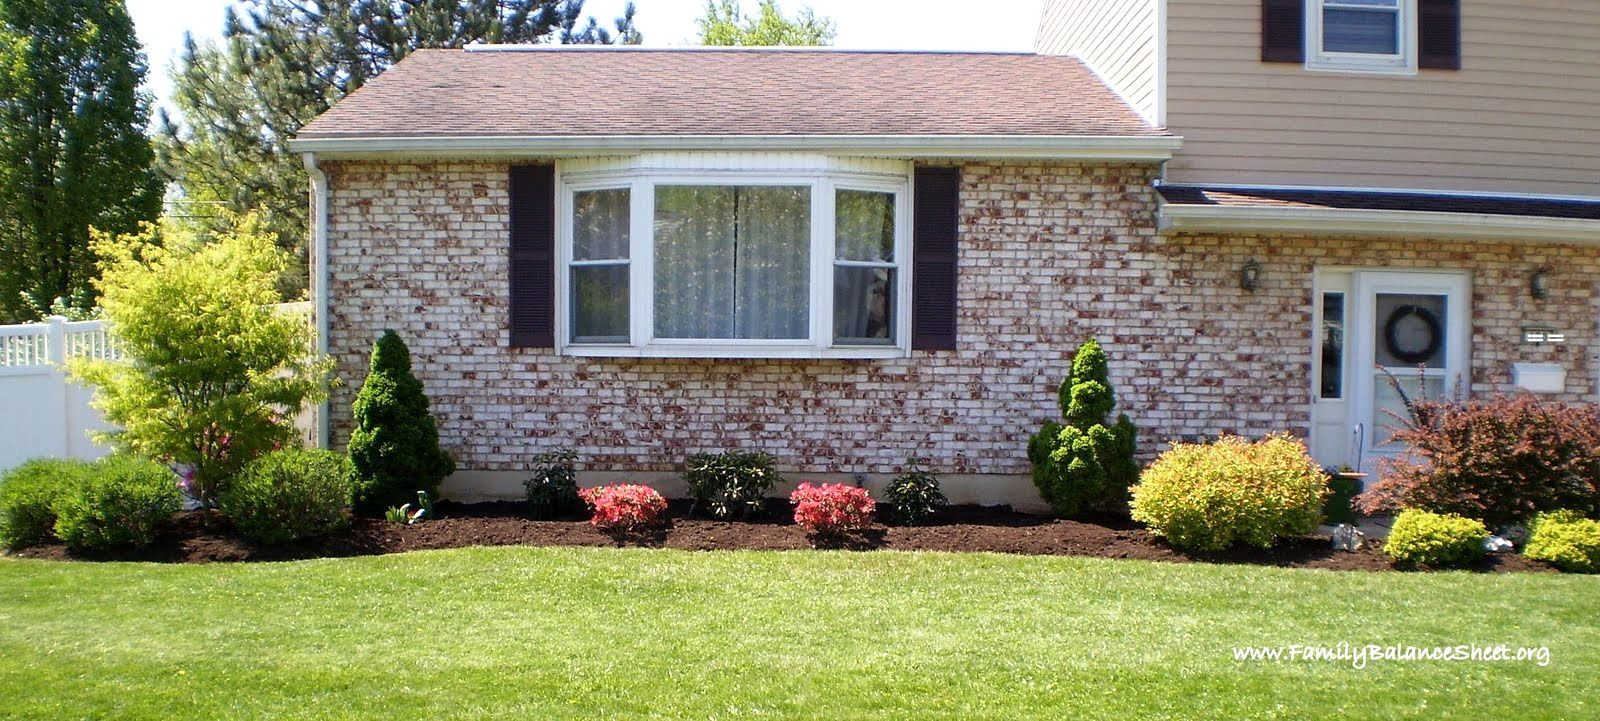 Landscaping ideas front yard ranch style home front yard for Simple front landscape ideas